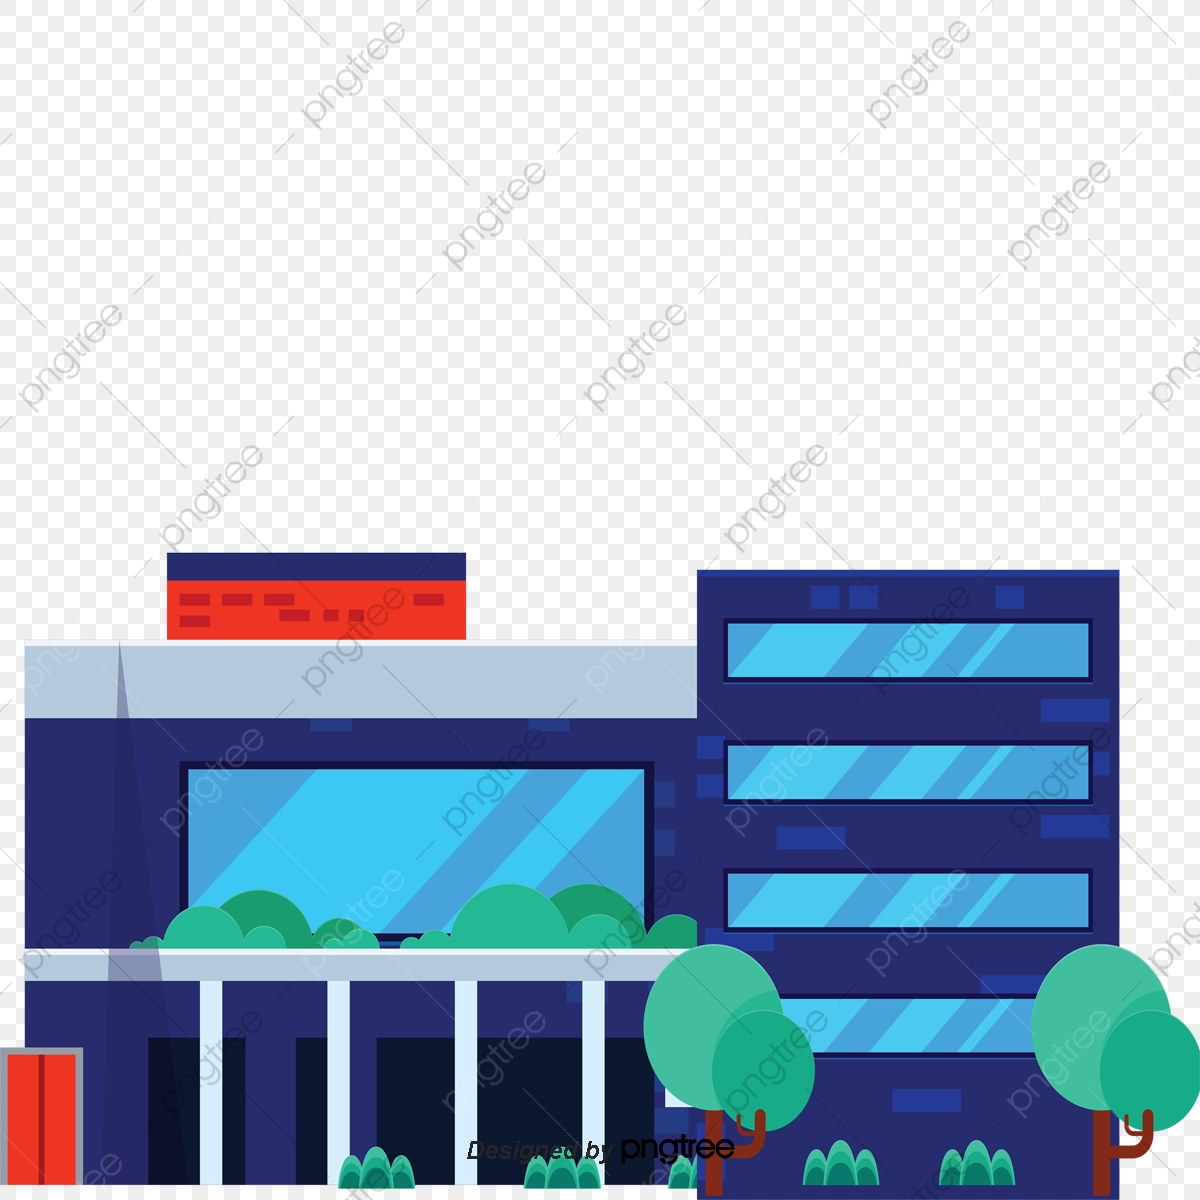 Cartoon Office Building Cartoon Vector Office Vector Building Vector Png Transparent Clipart Image And Psd File For Free Download